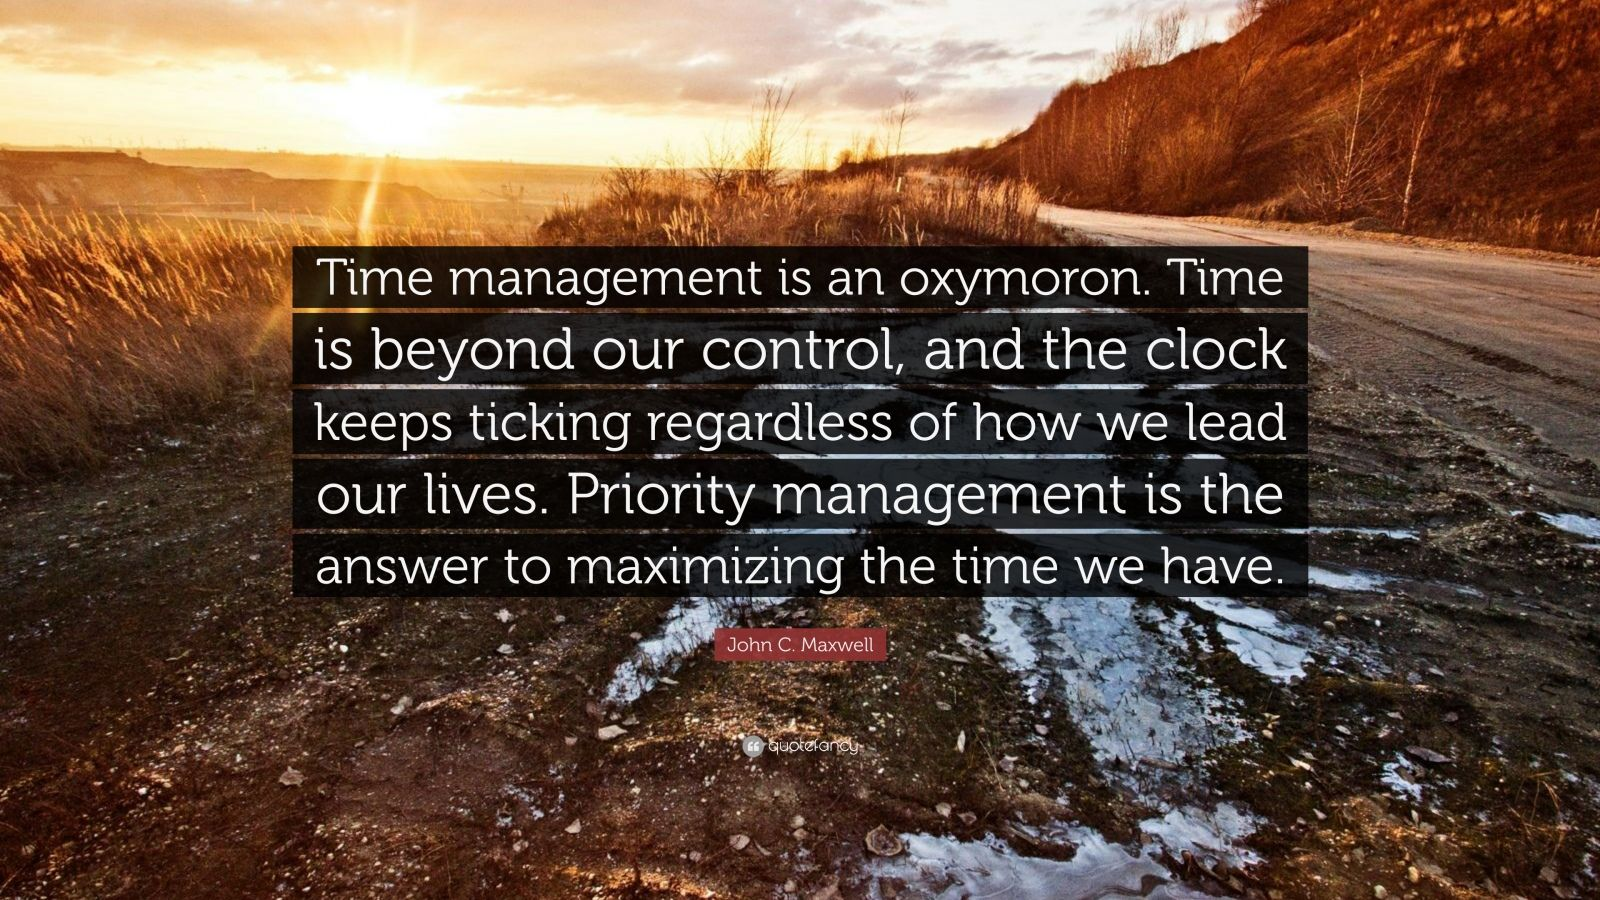 "John C. Maxwell Quote: ""Time management is an oxymoron. Time is beyond our control, and the clock keeps ticking regardless of how we lead our lives. Priority management is the answer to maximizing the time we have."""